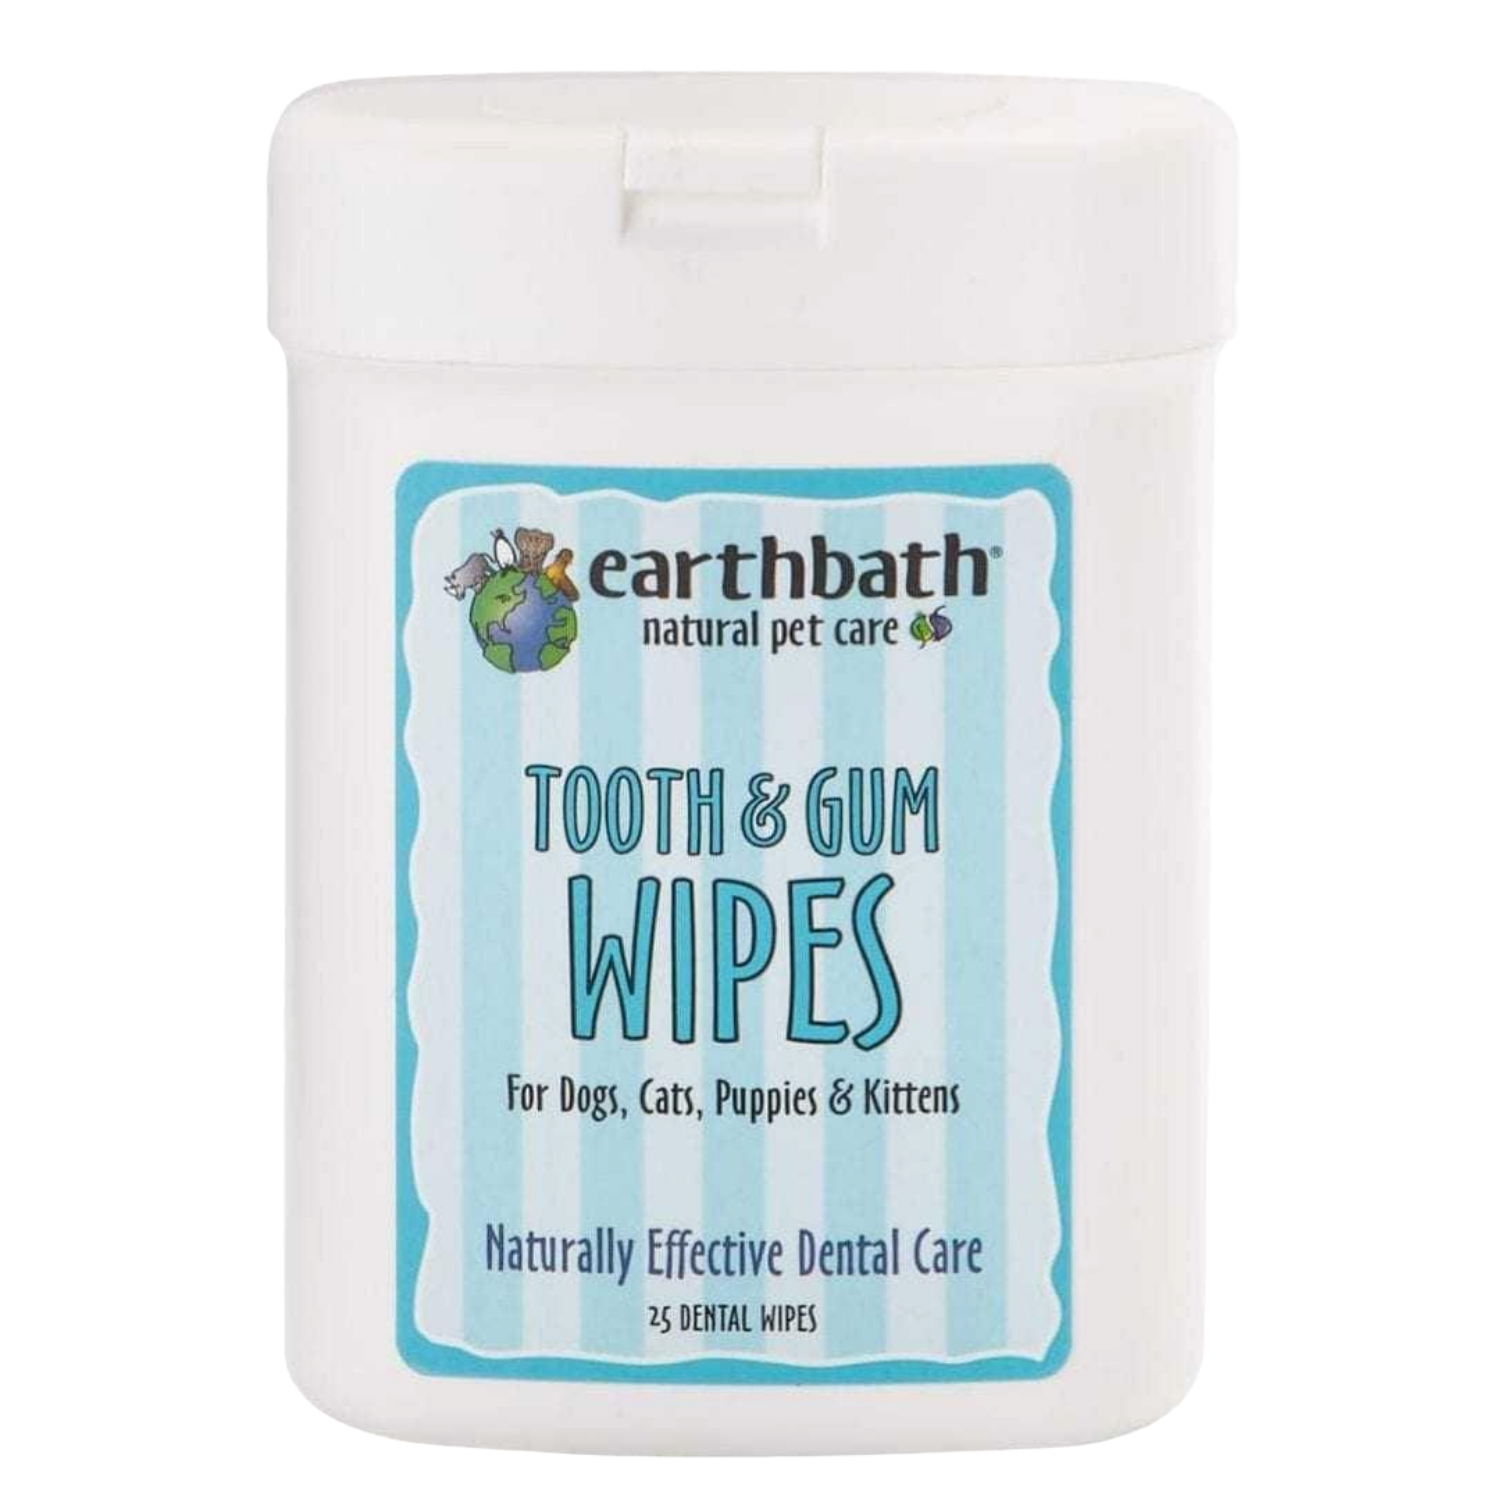 Earthbath Tooth & Gums Wipes (25 Wipes)